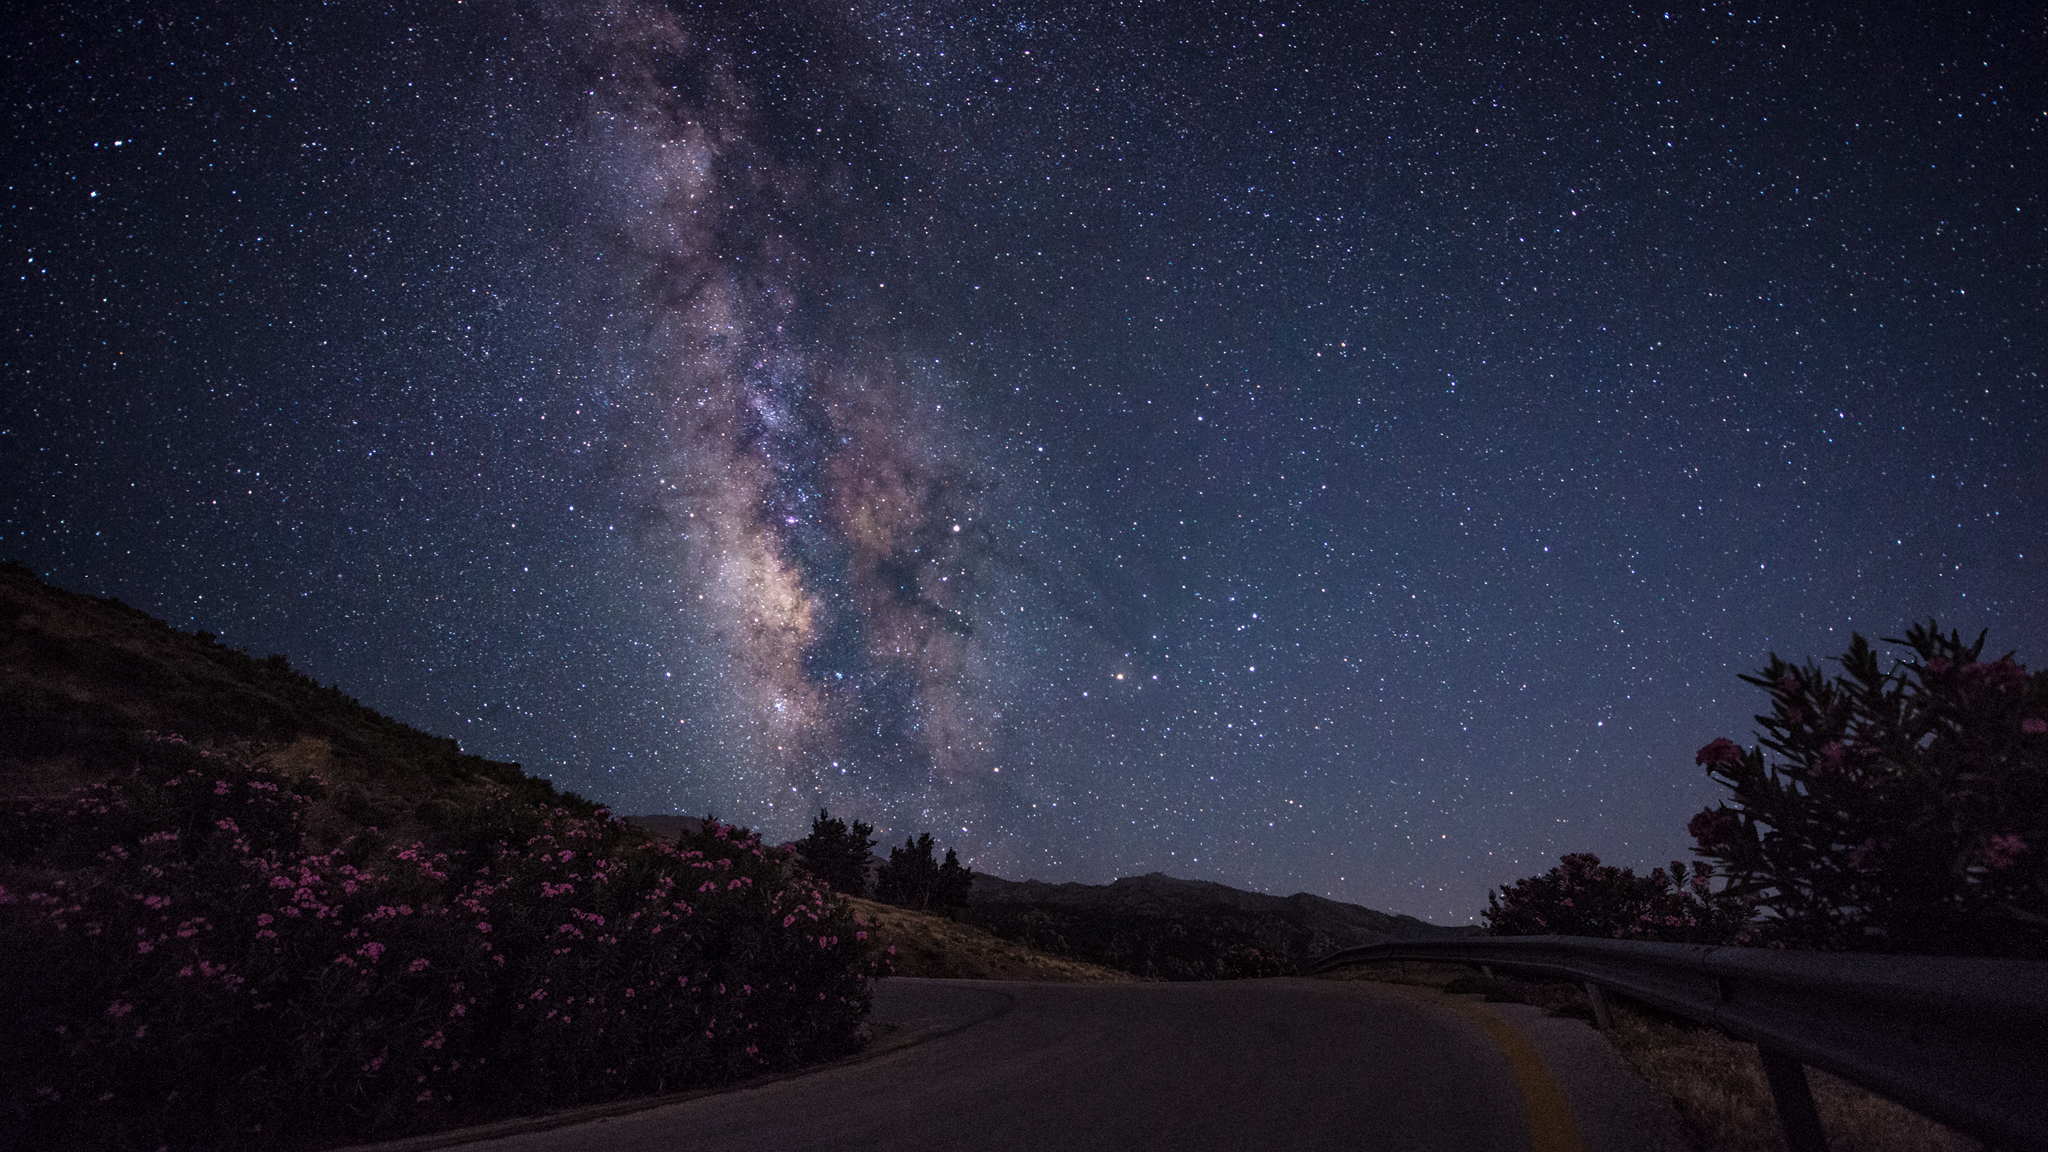 the road of Milky way